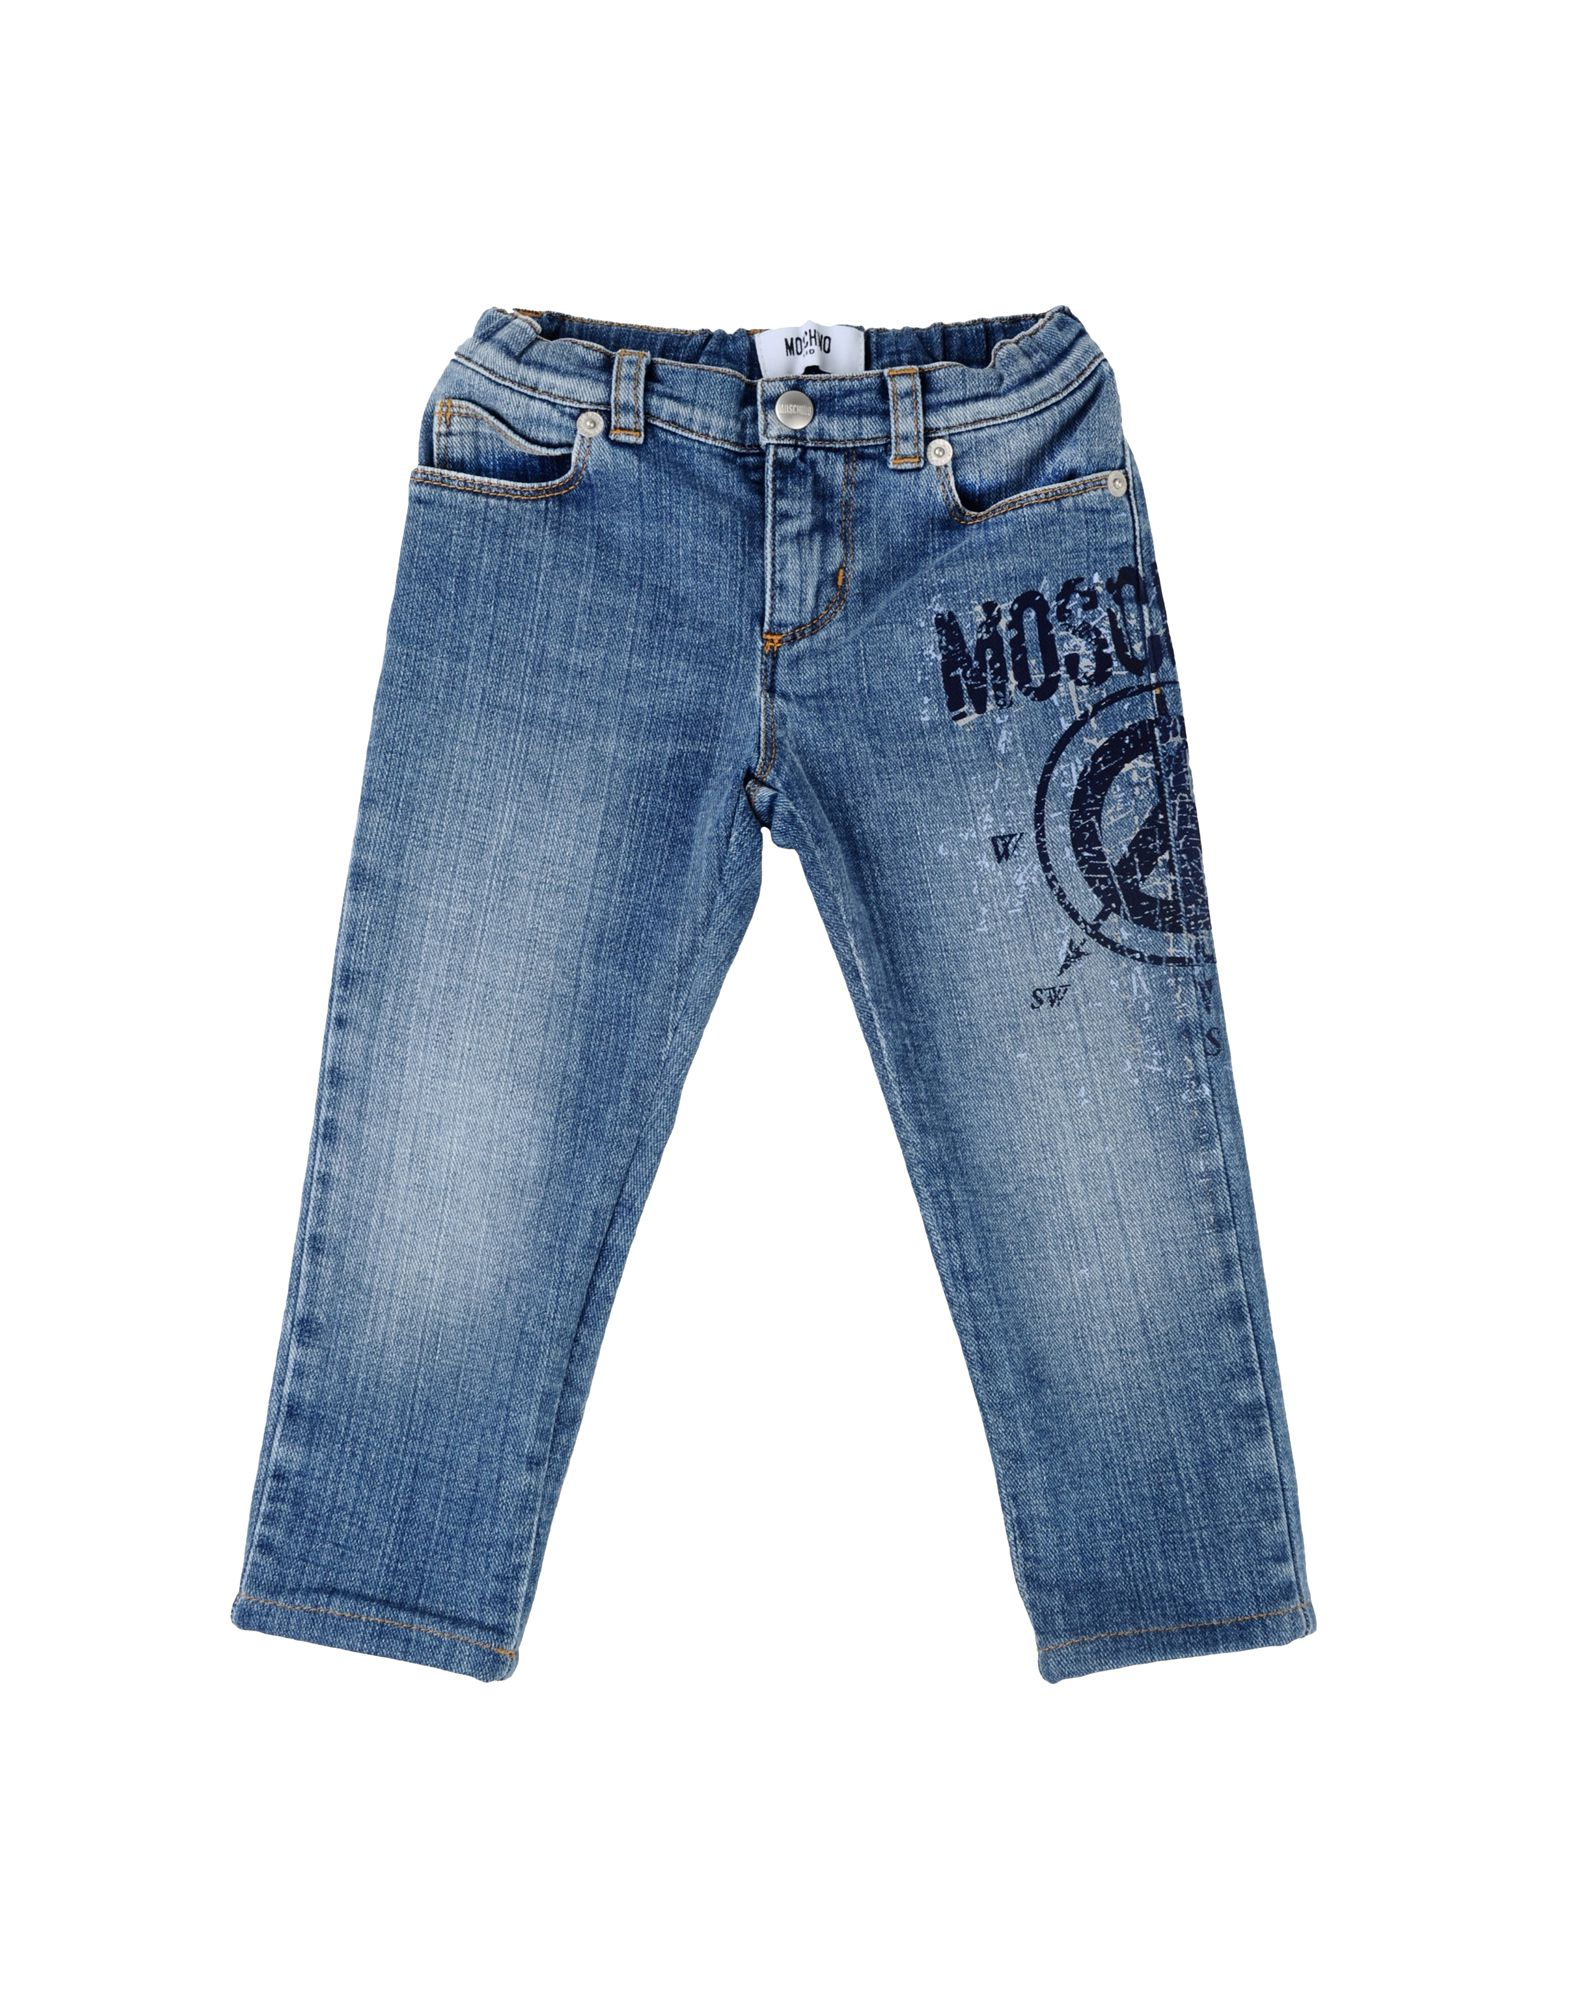 Moschino denim trousers for kids